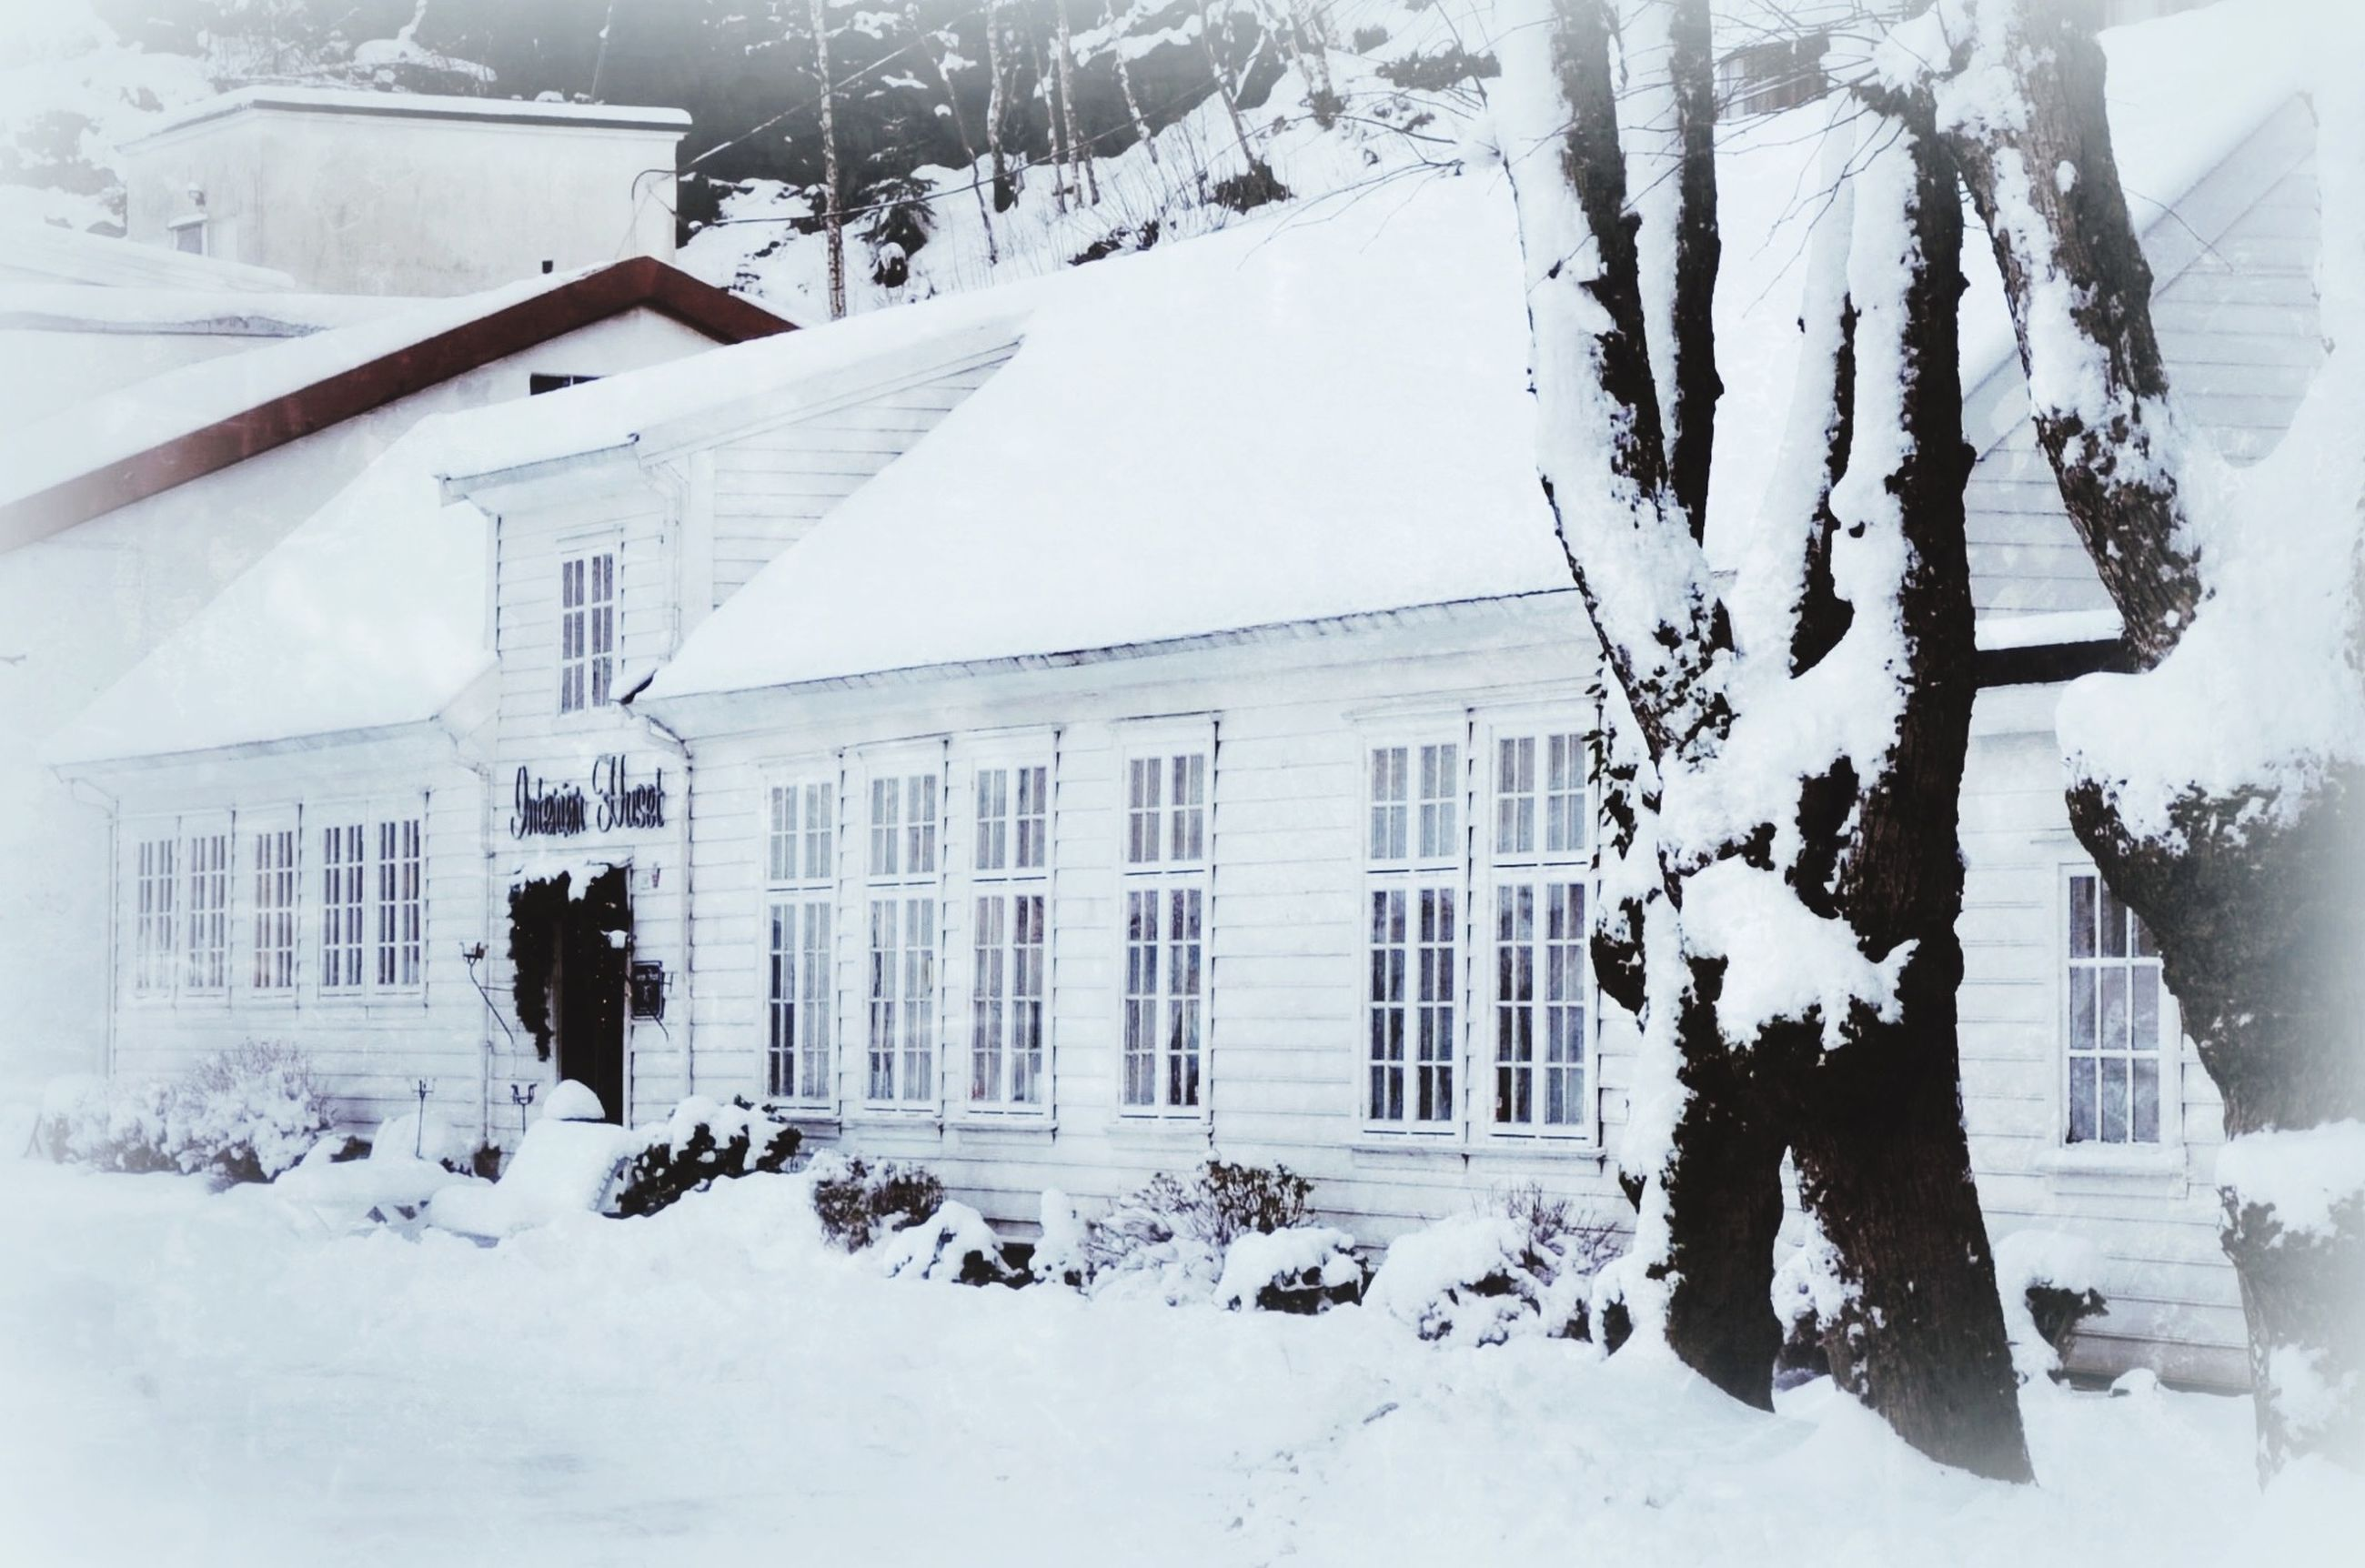 snow, winter, cold temperature, season, building exterior, architecture, weather, built structure, covering, white color, walking, rear view, full length, window, house, day, lifestyles, men